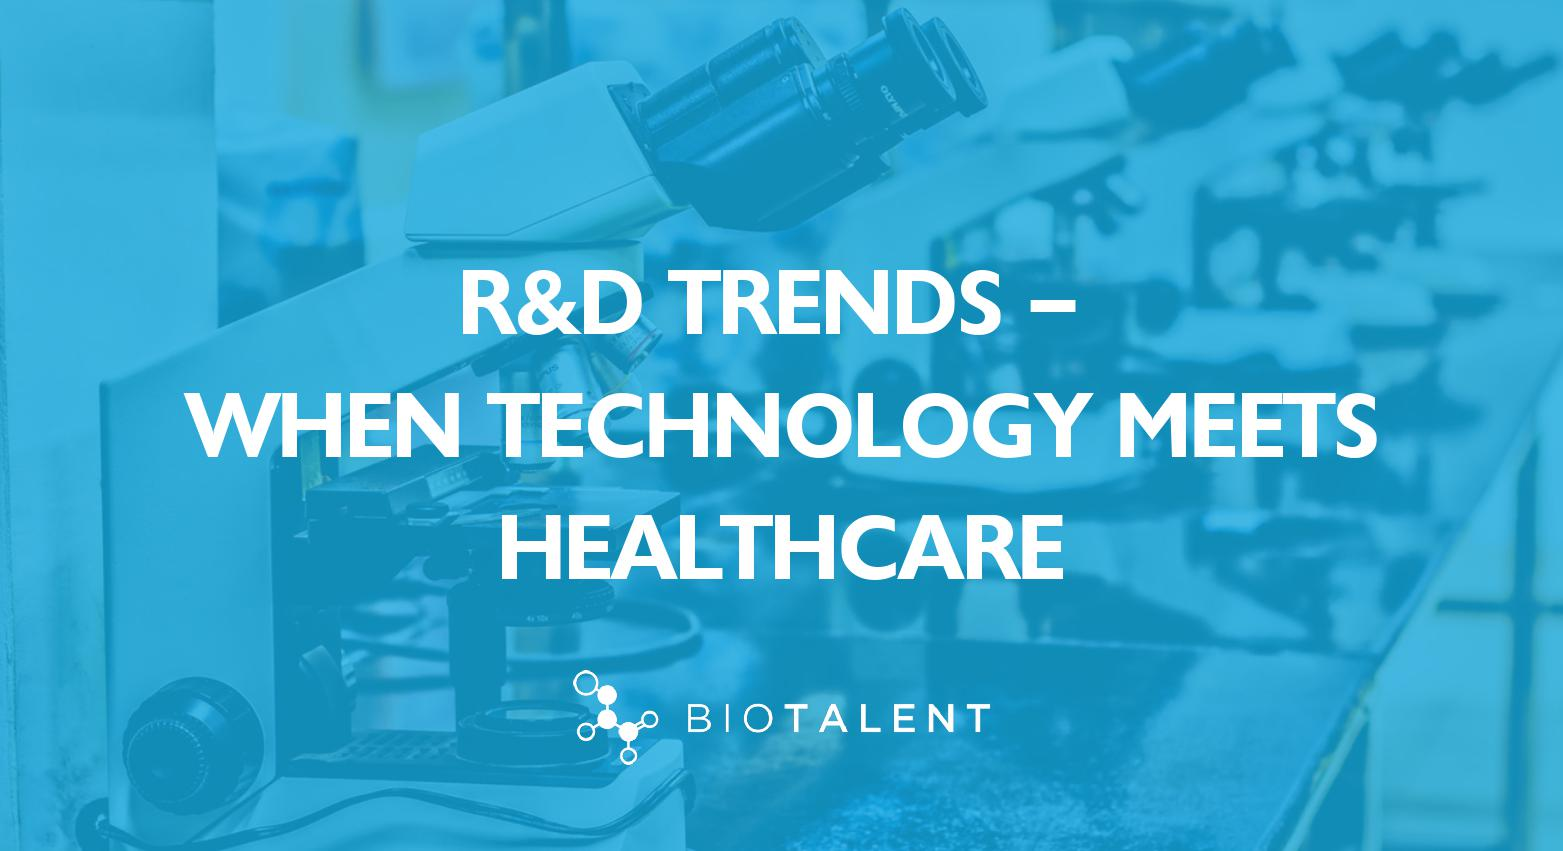 R&D Trends – When Technology Meets Healthcare